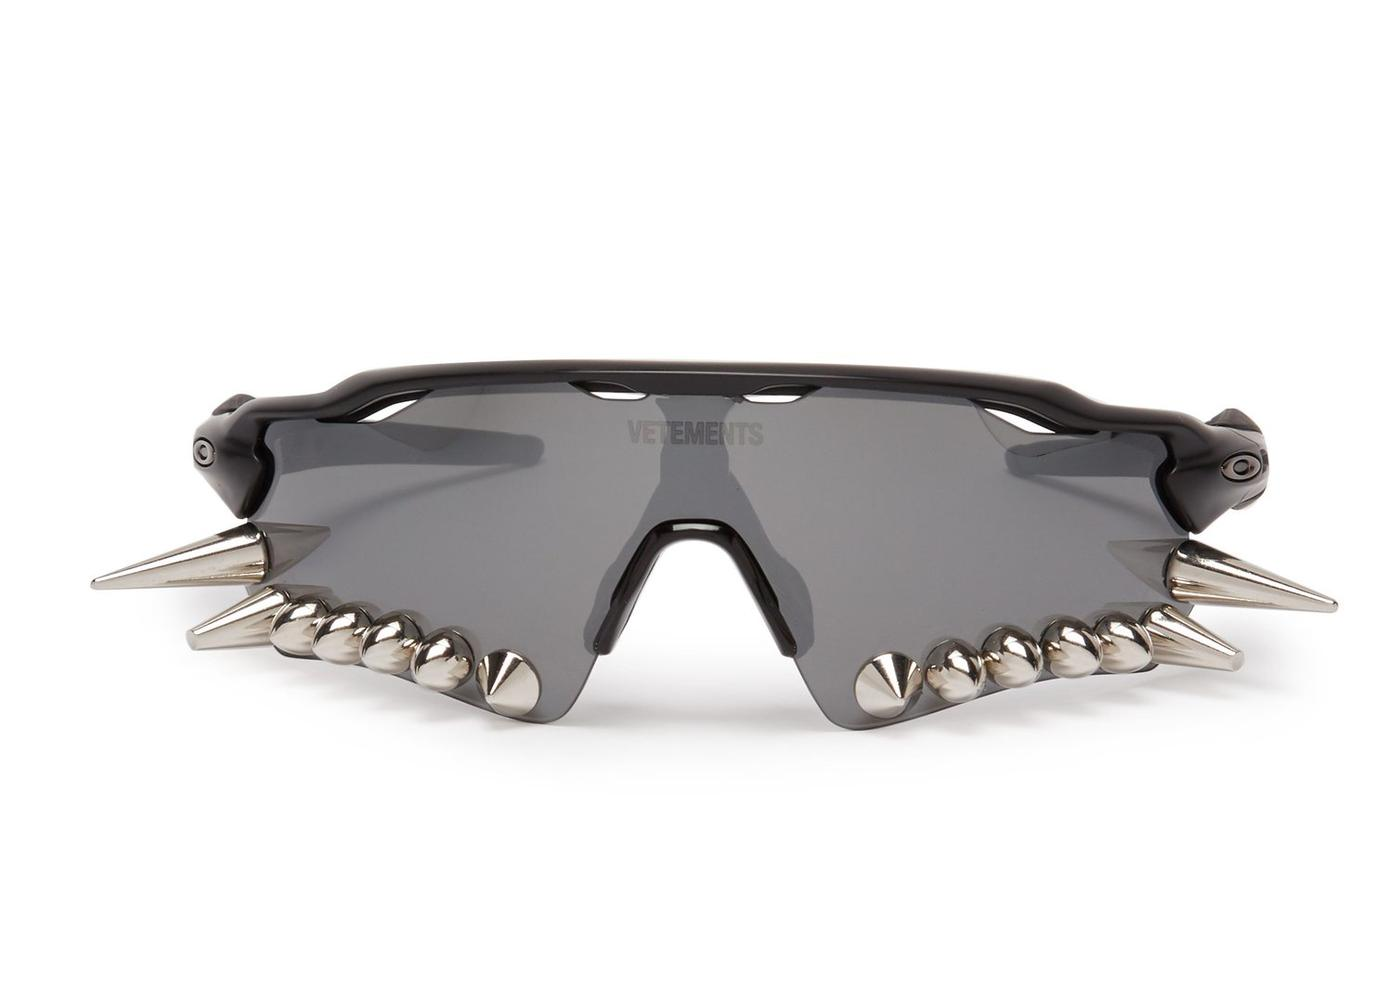 Intimidation on the Road with the Vetements Oakley Sunglasses